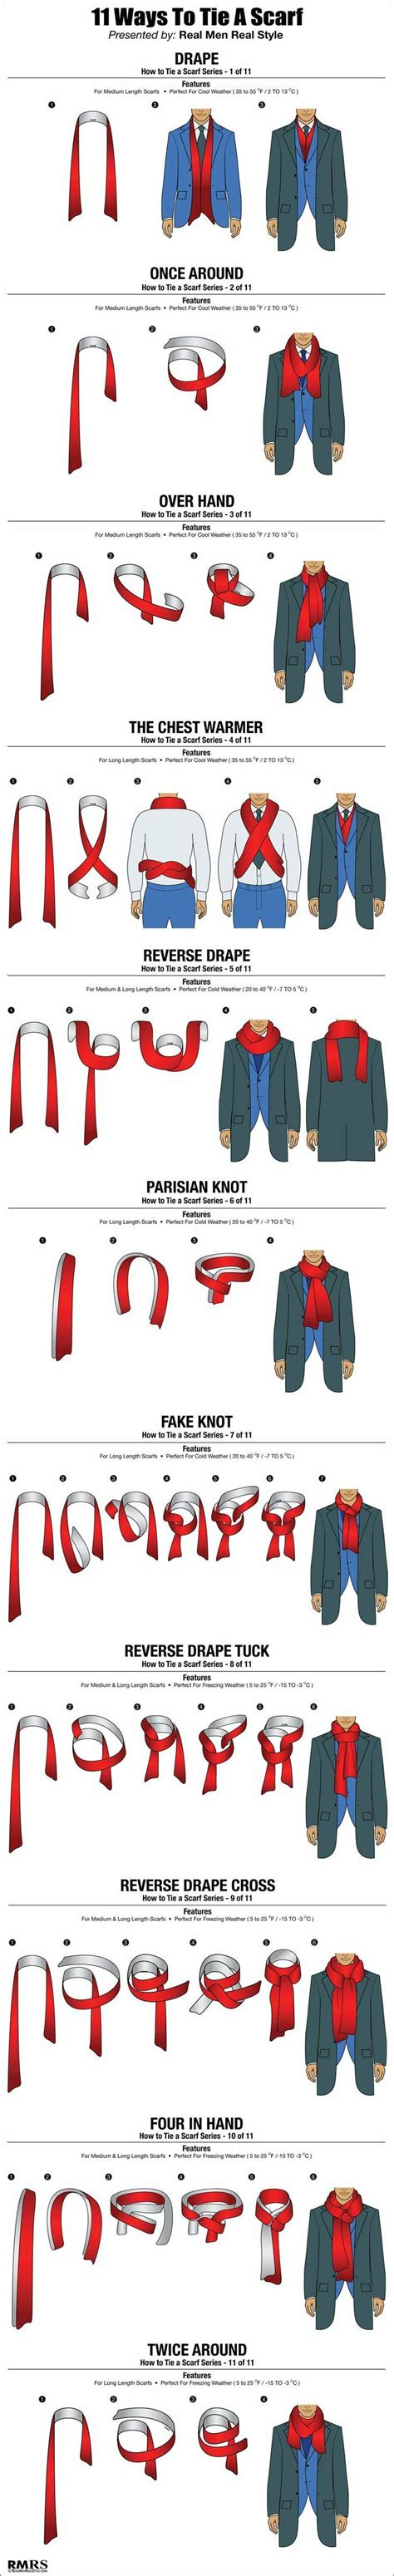 11 ways a guy can tie his scarf the huffington post 25 best images about dress for success men on pinterest